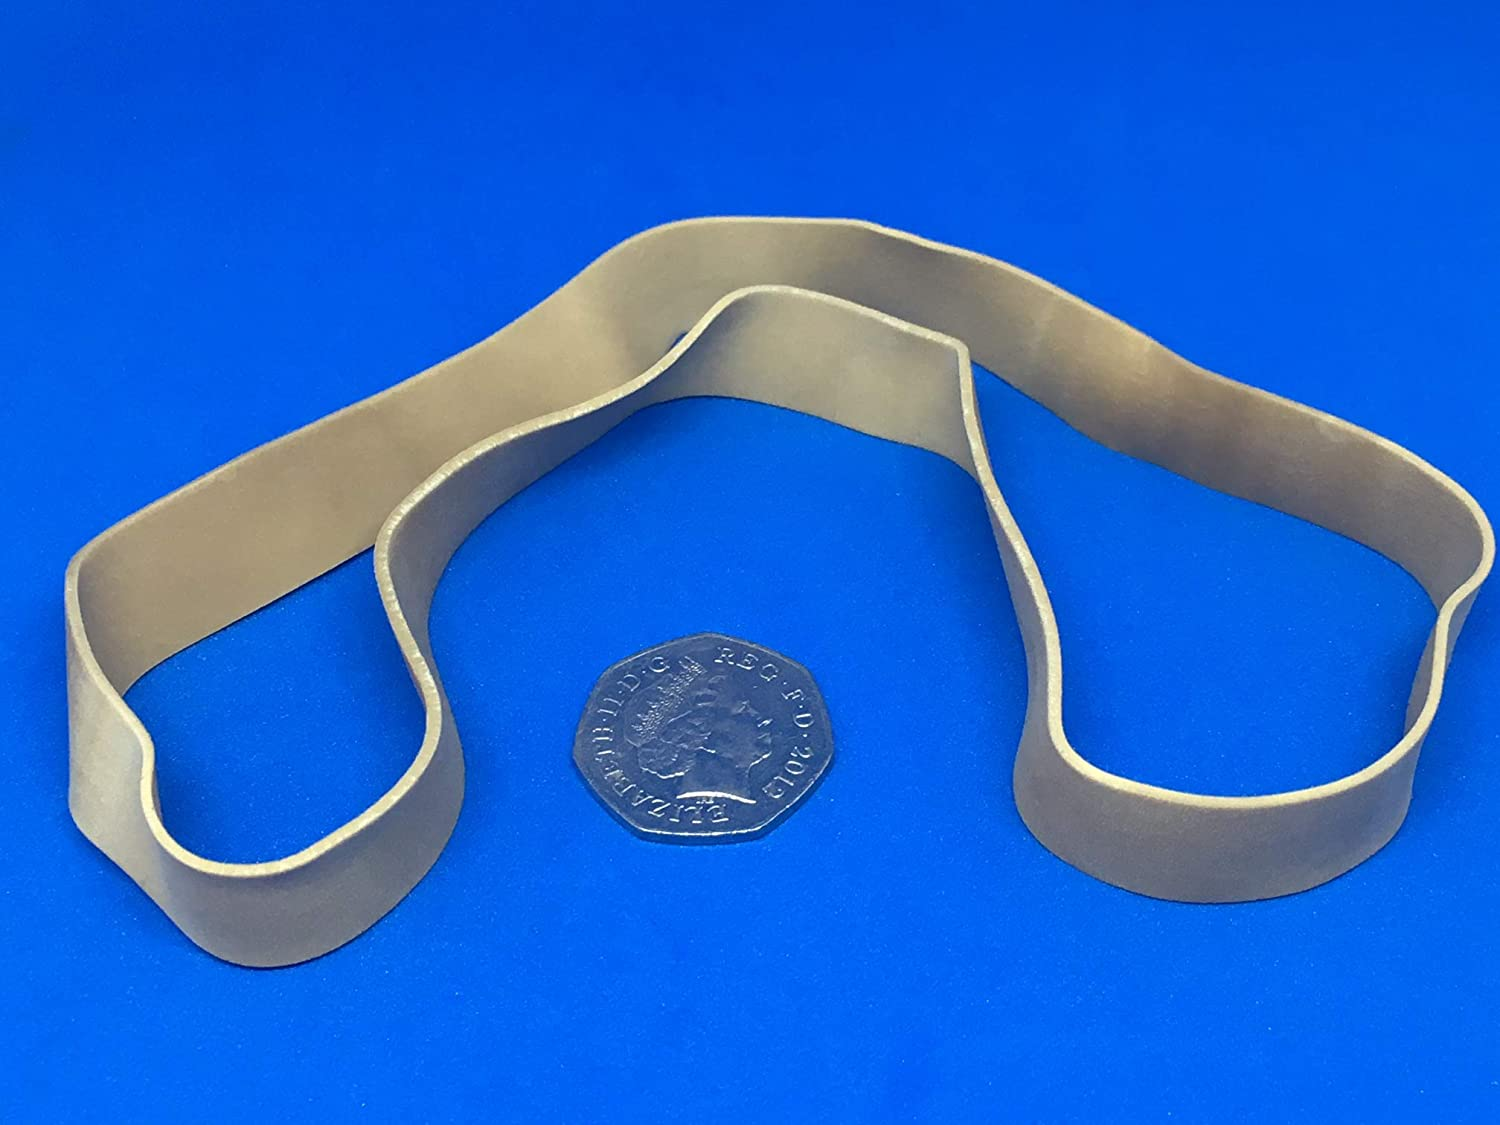 Qty 100 Extra Large No.108 Rubber Elastic Bands 200mm x 16mm